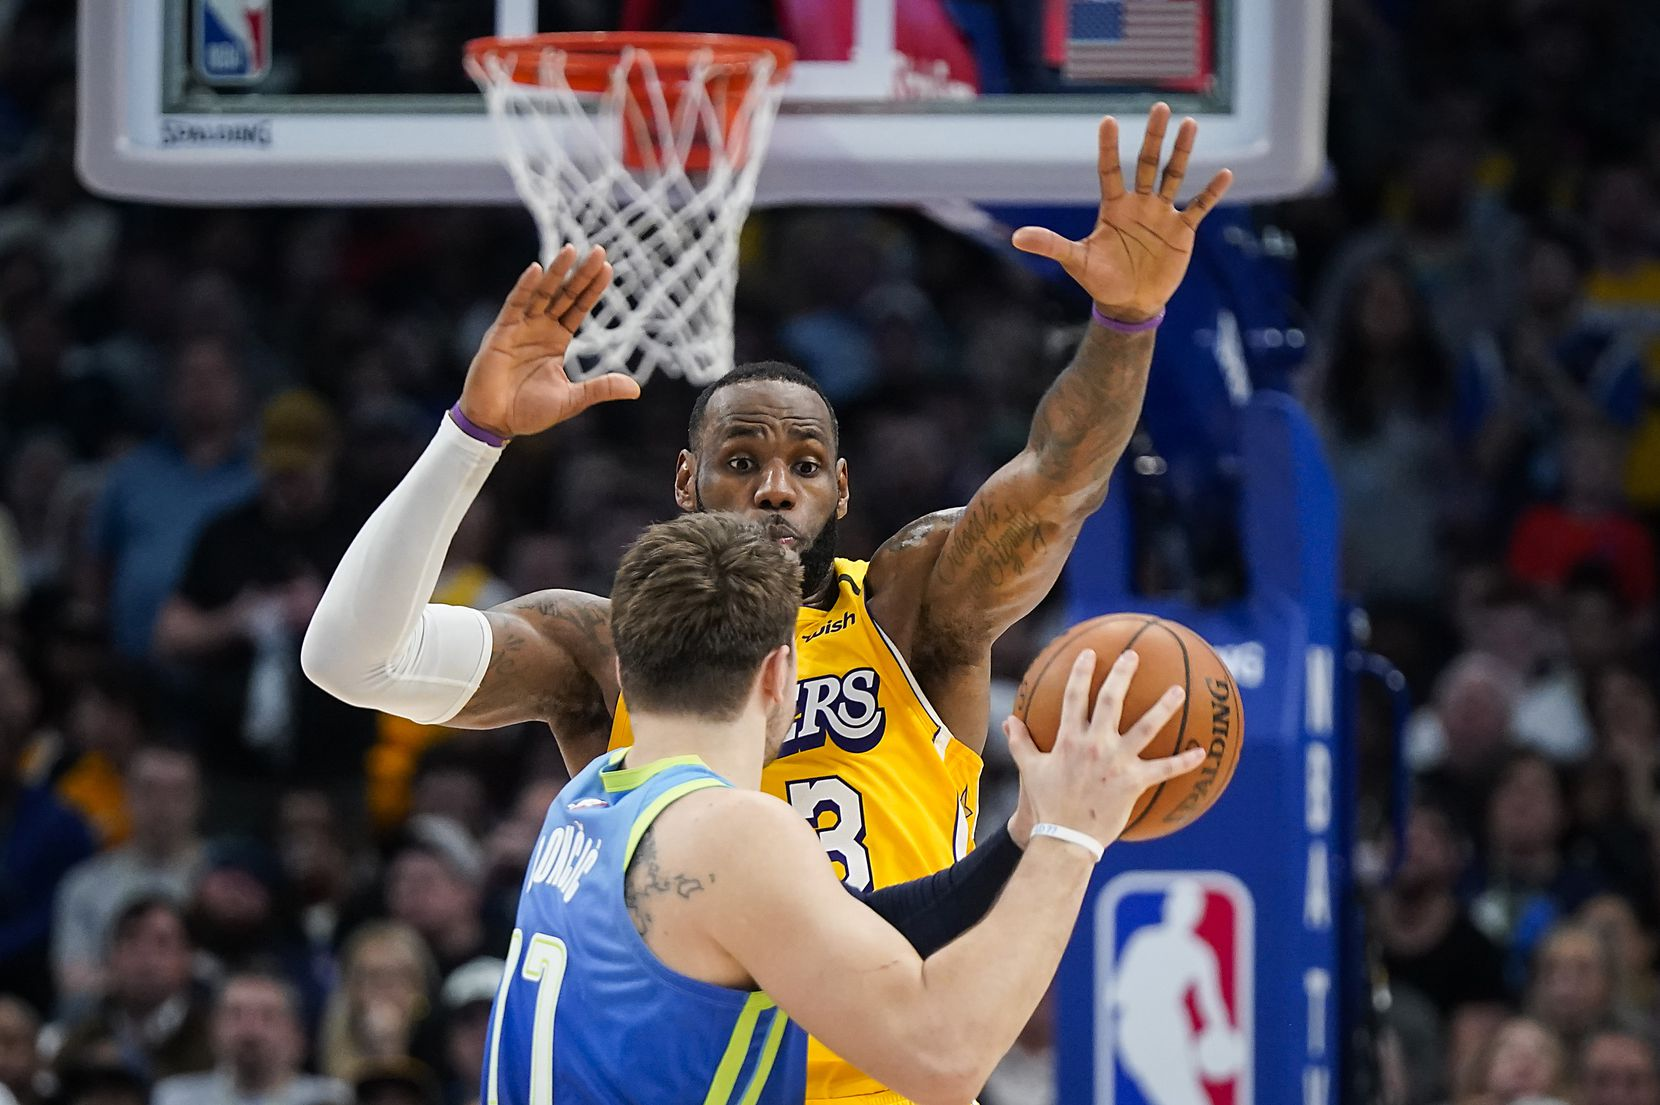 Los Angeles Lakers forward LeBron James (23) defends against Dallas Mavericks guard Luka Doncic (77) during the second half of an NBA basketball game at American Airlines Center on Friday, Jan. 10, 2020, in Dallas.